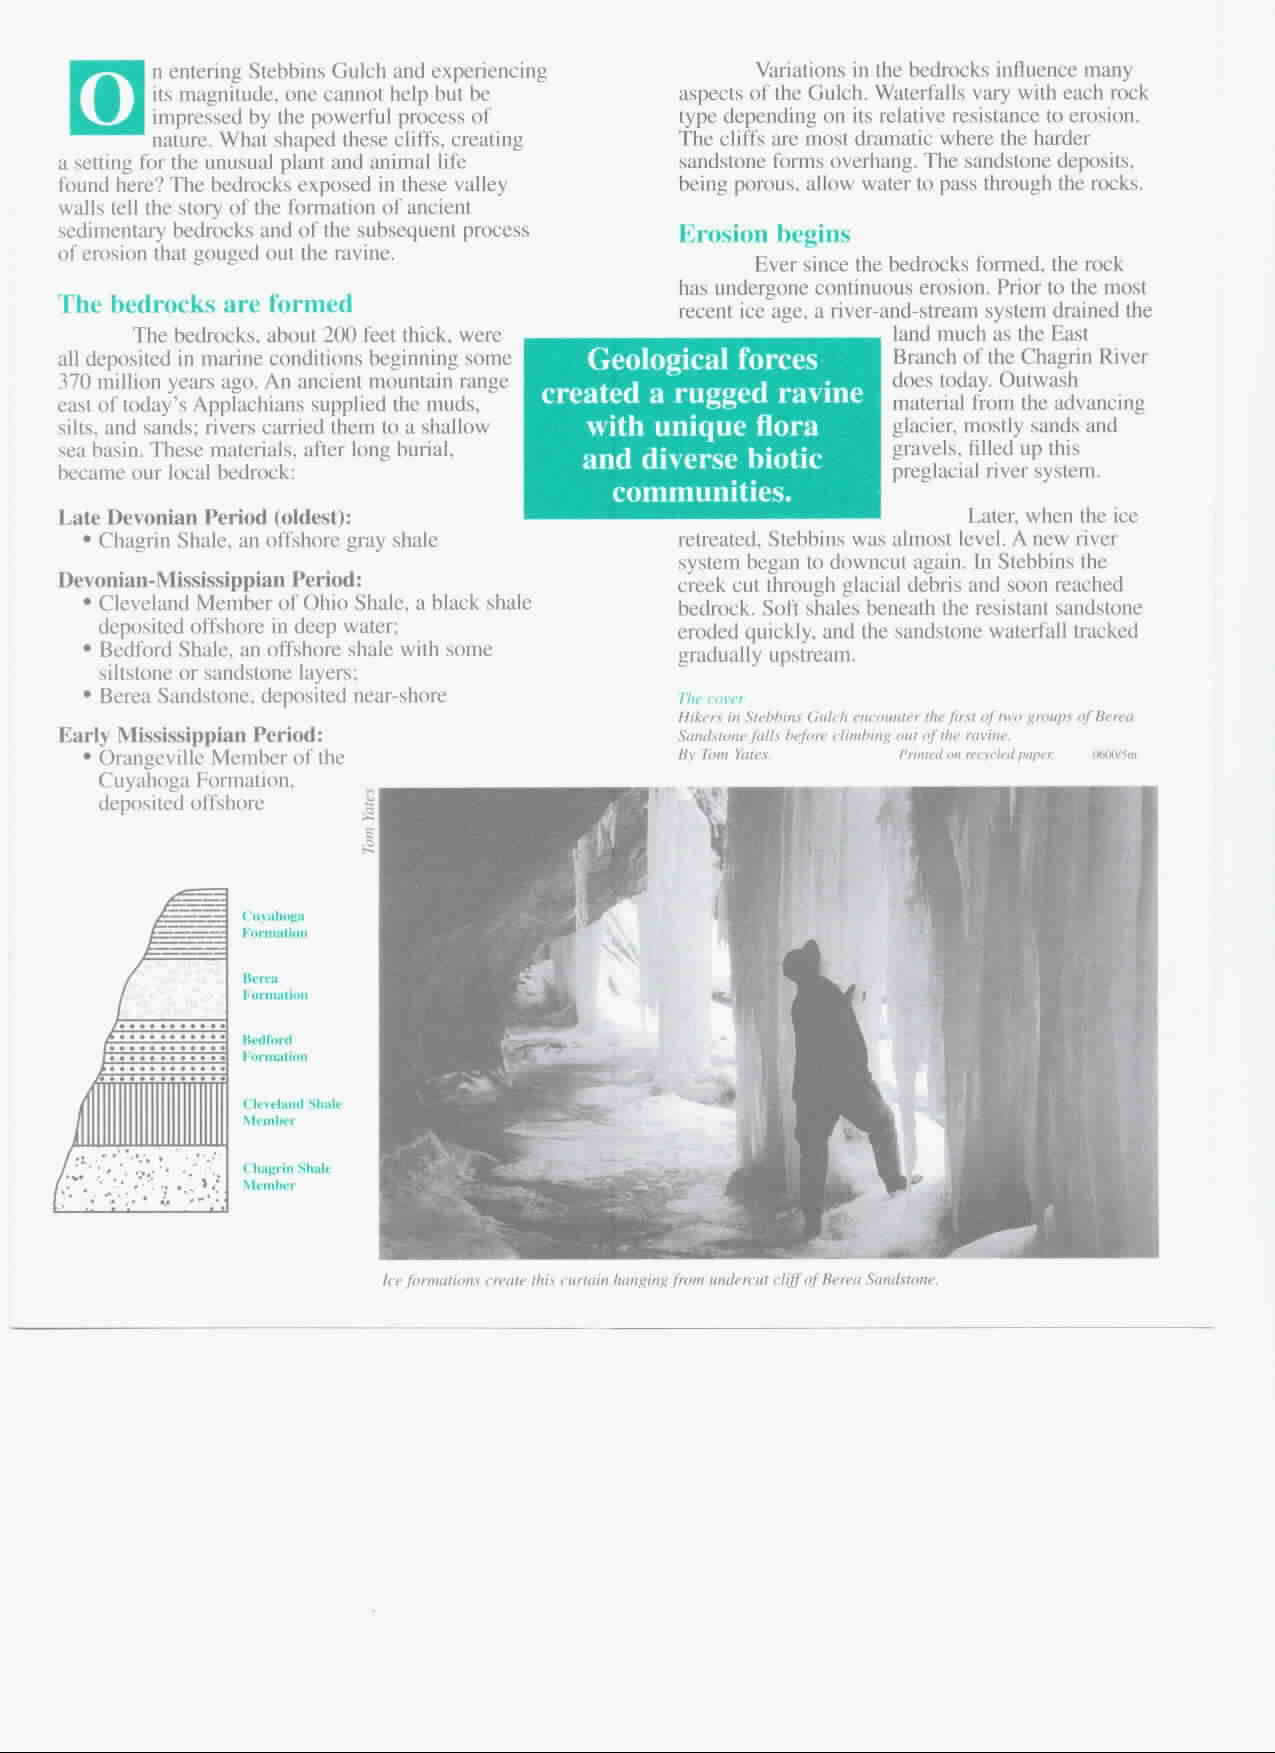 Stebbins Gulch Brochure Part 2